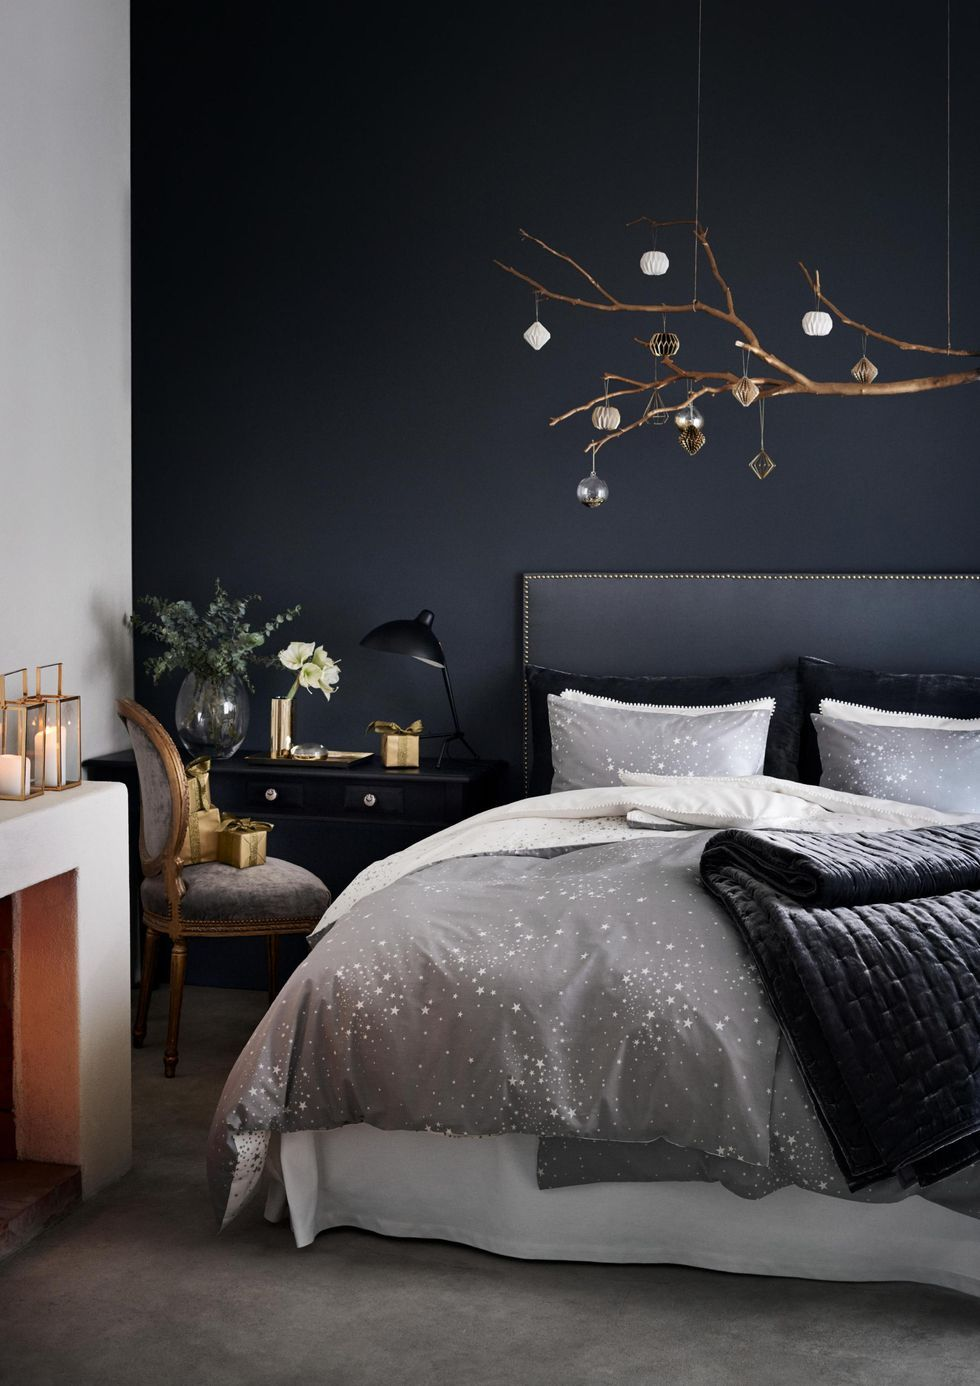 bedroom, black accent wall, white wall, white bedding, black wooden table, black table lamp, grey chair, accessories